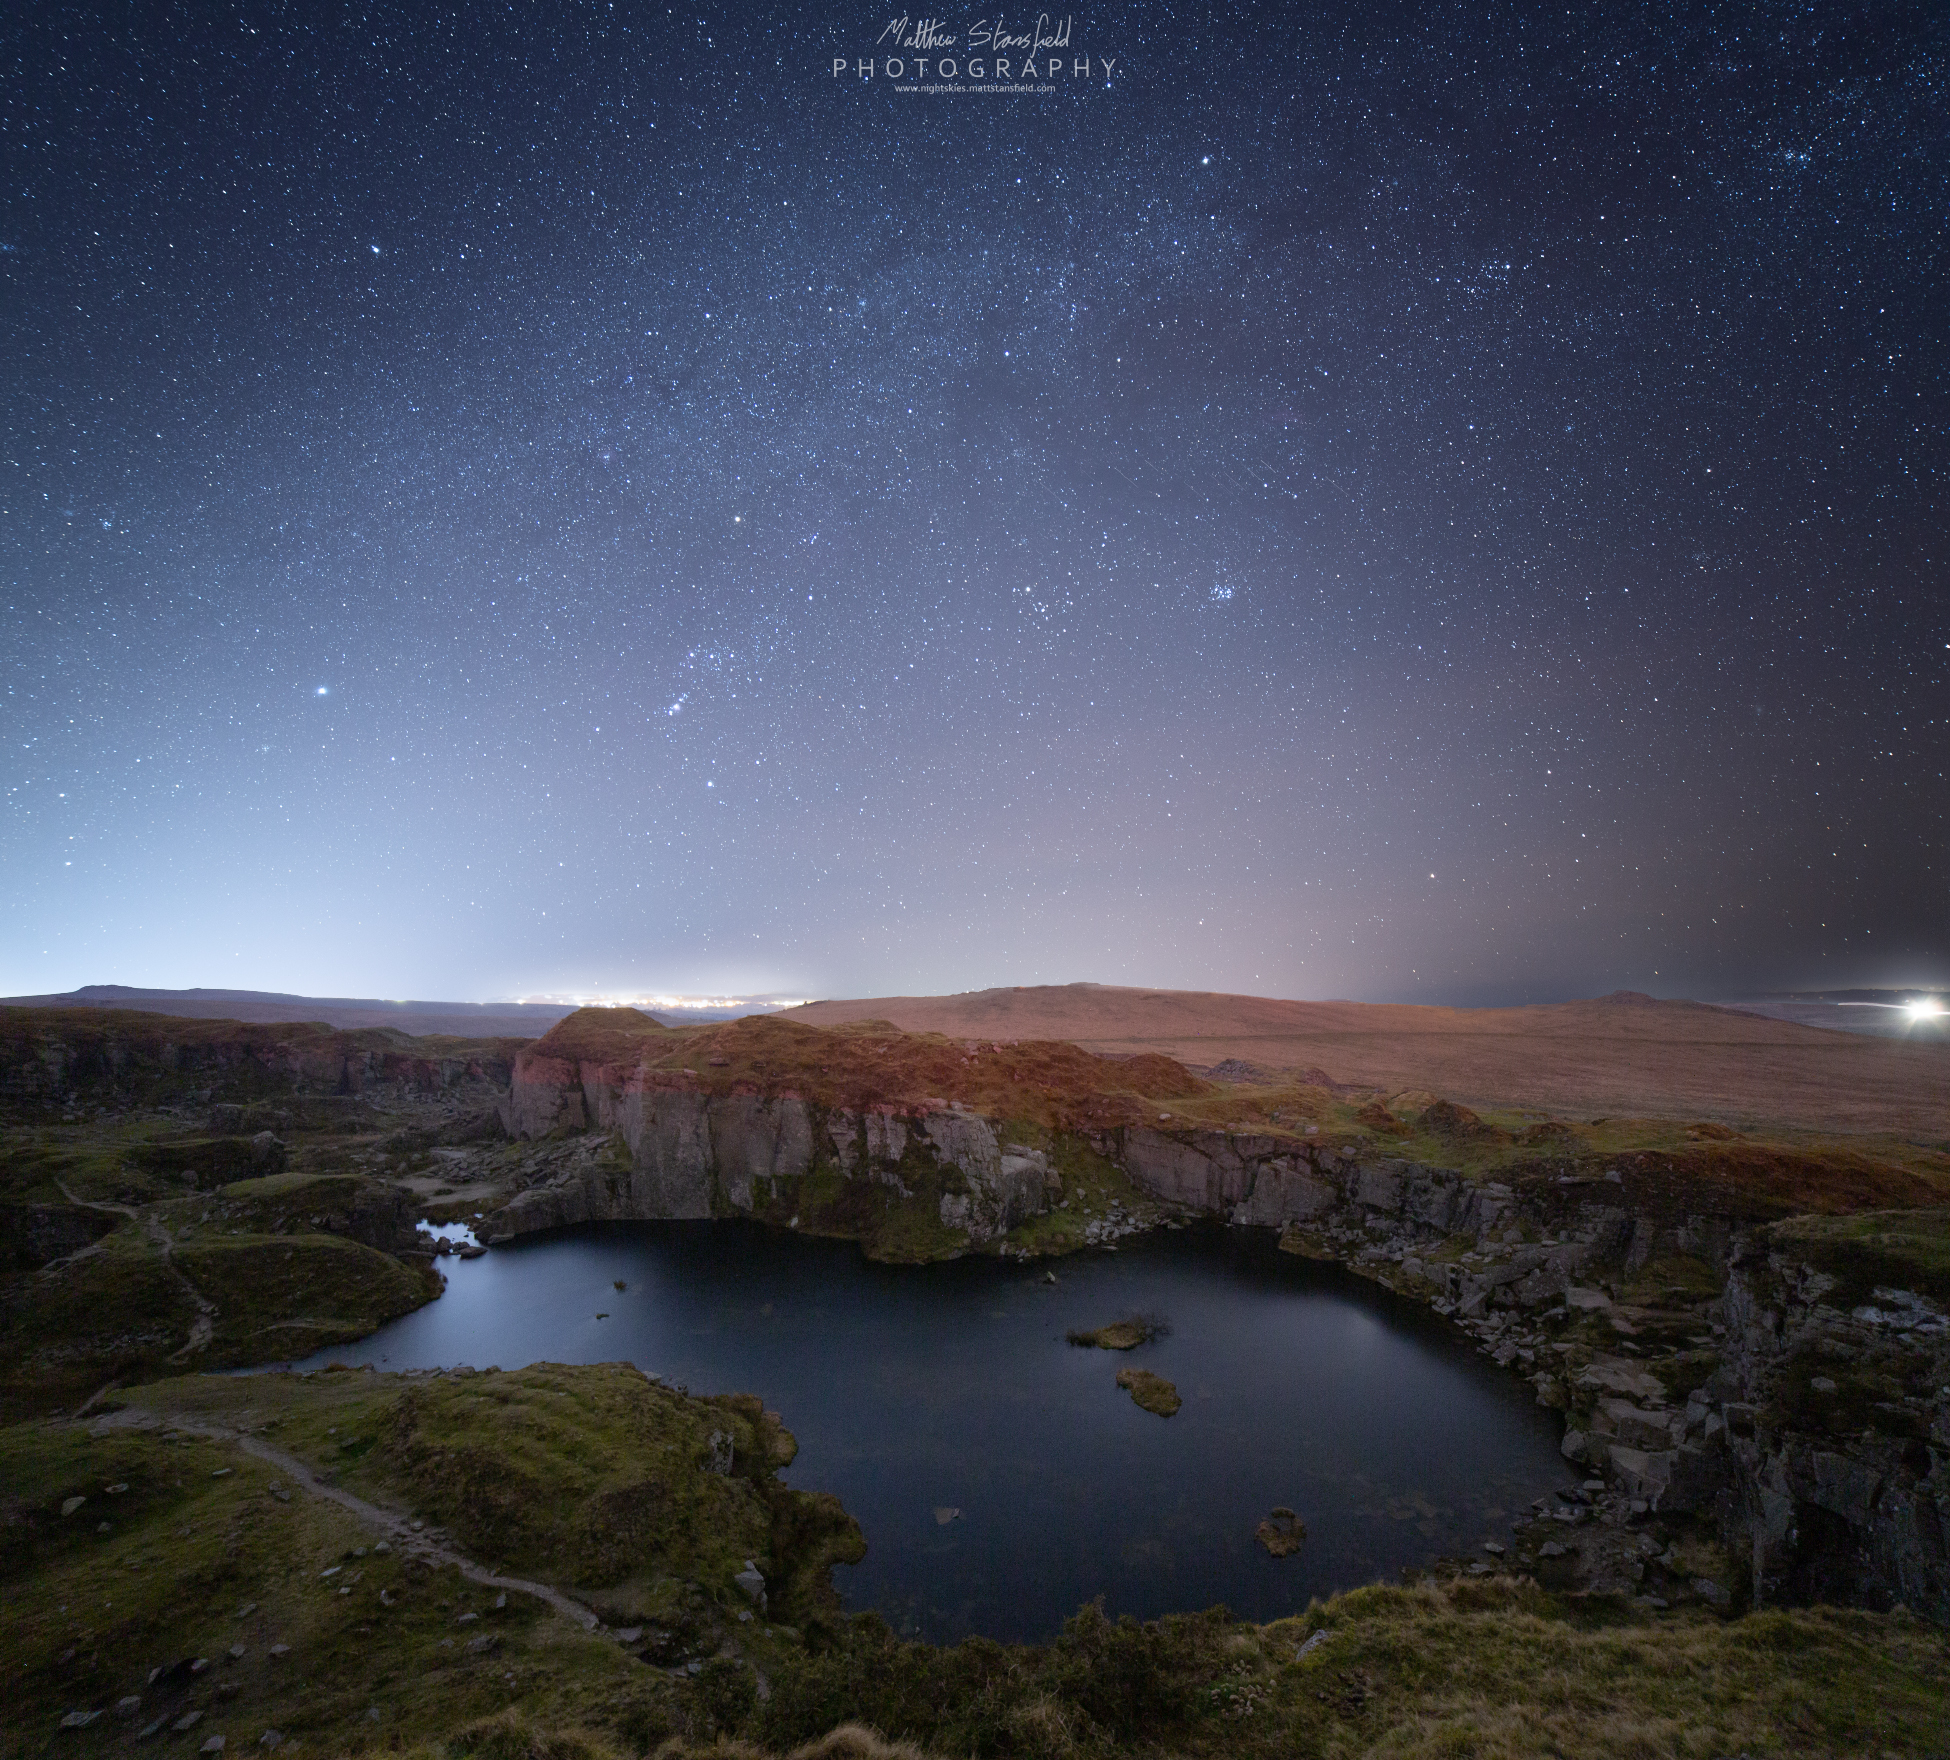 Foggingtor Quarry - ISO 800, F2.8, 240 seconds for the sky. ISO 1600, F2.8, 320 second exposure.